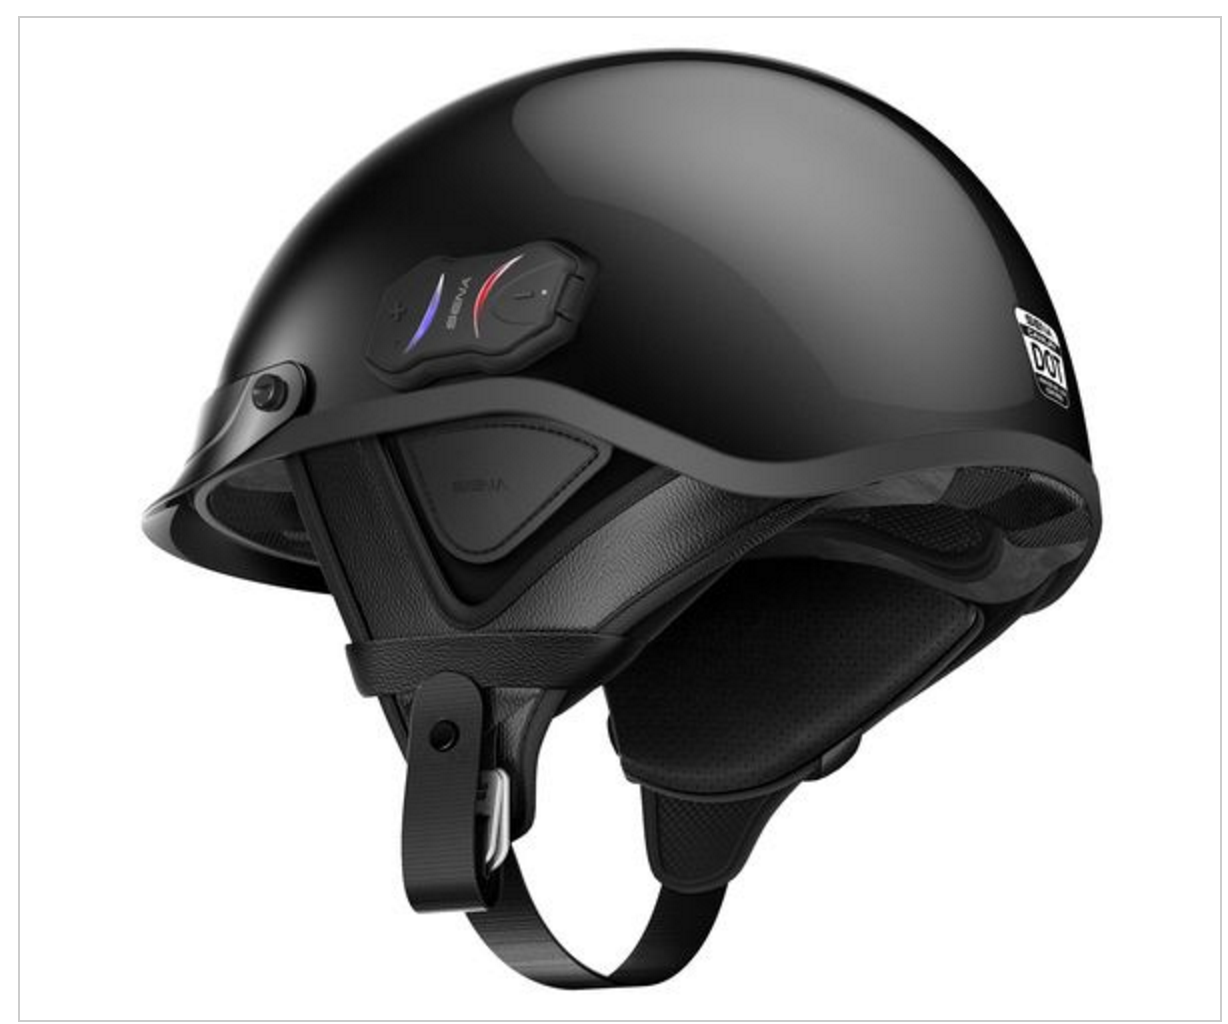 Top 5 BEST Bluetooth Motorcycle Helmets. [UPDATED FOR 2017]